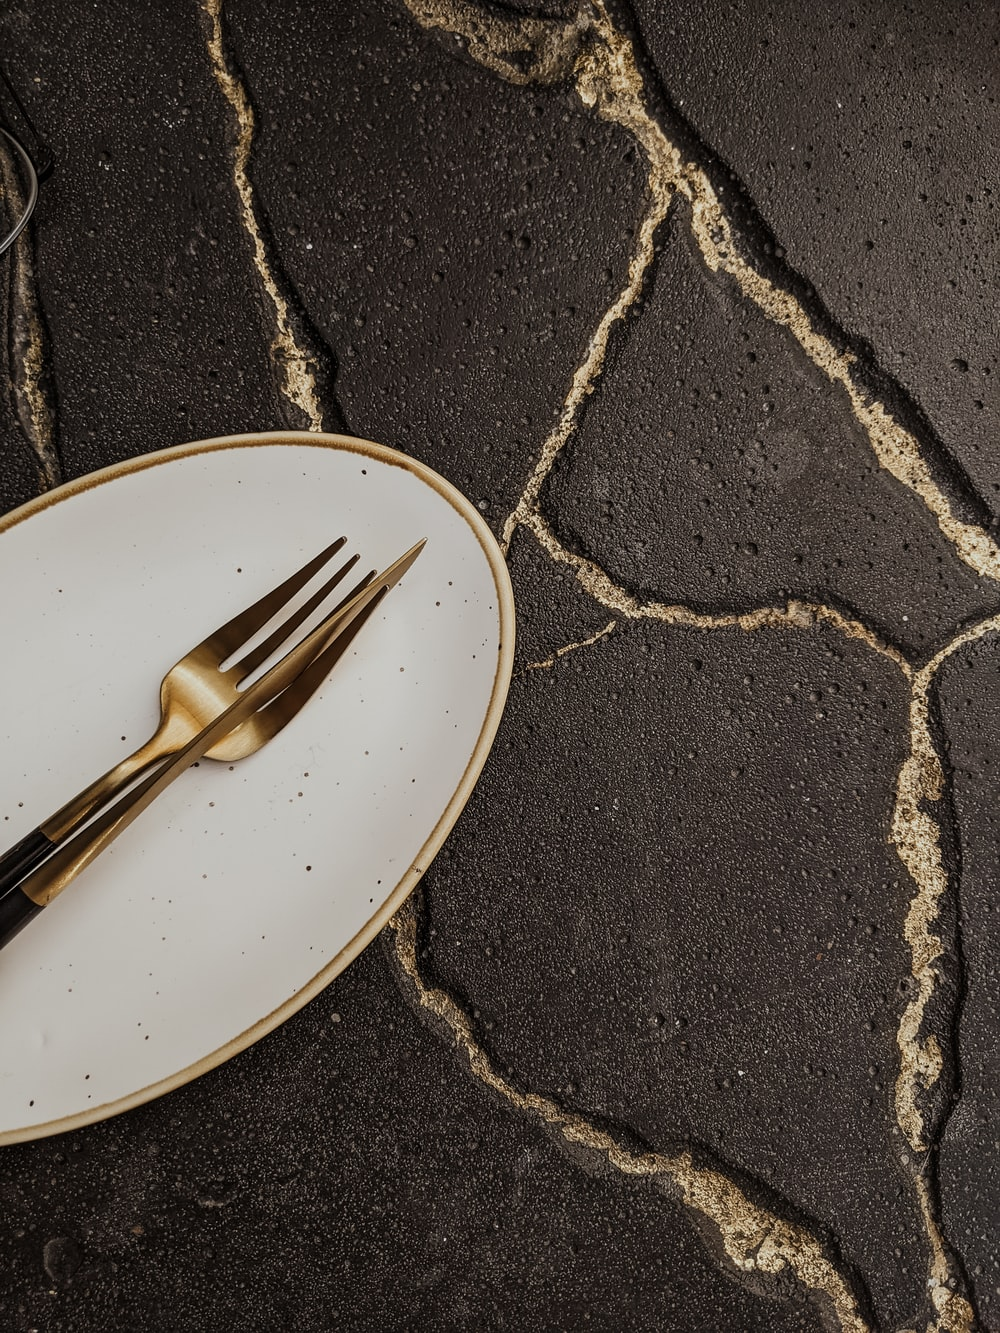 stainless steel fork on white and black ceramic plate